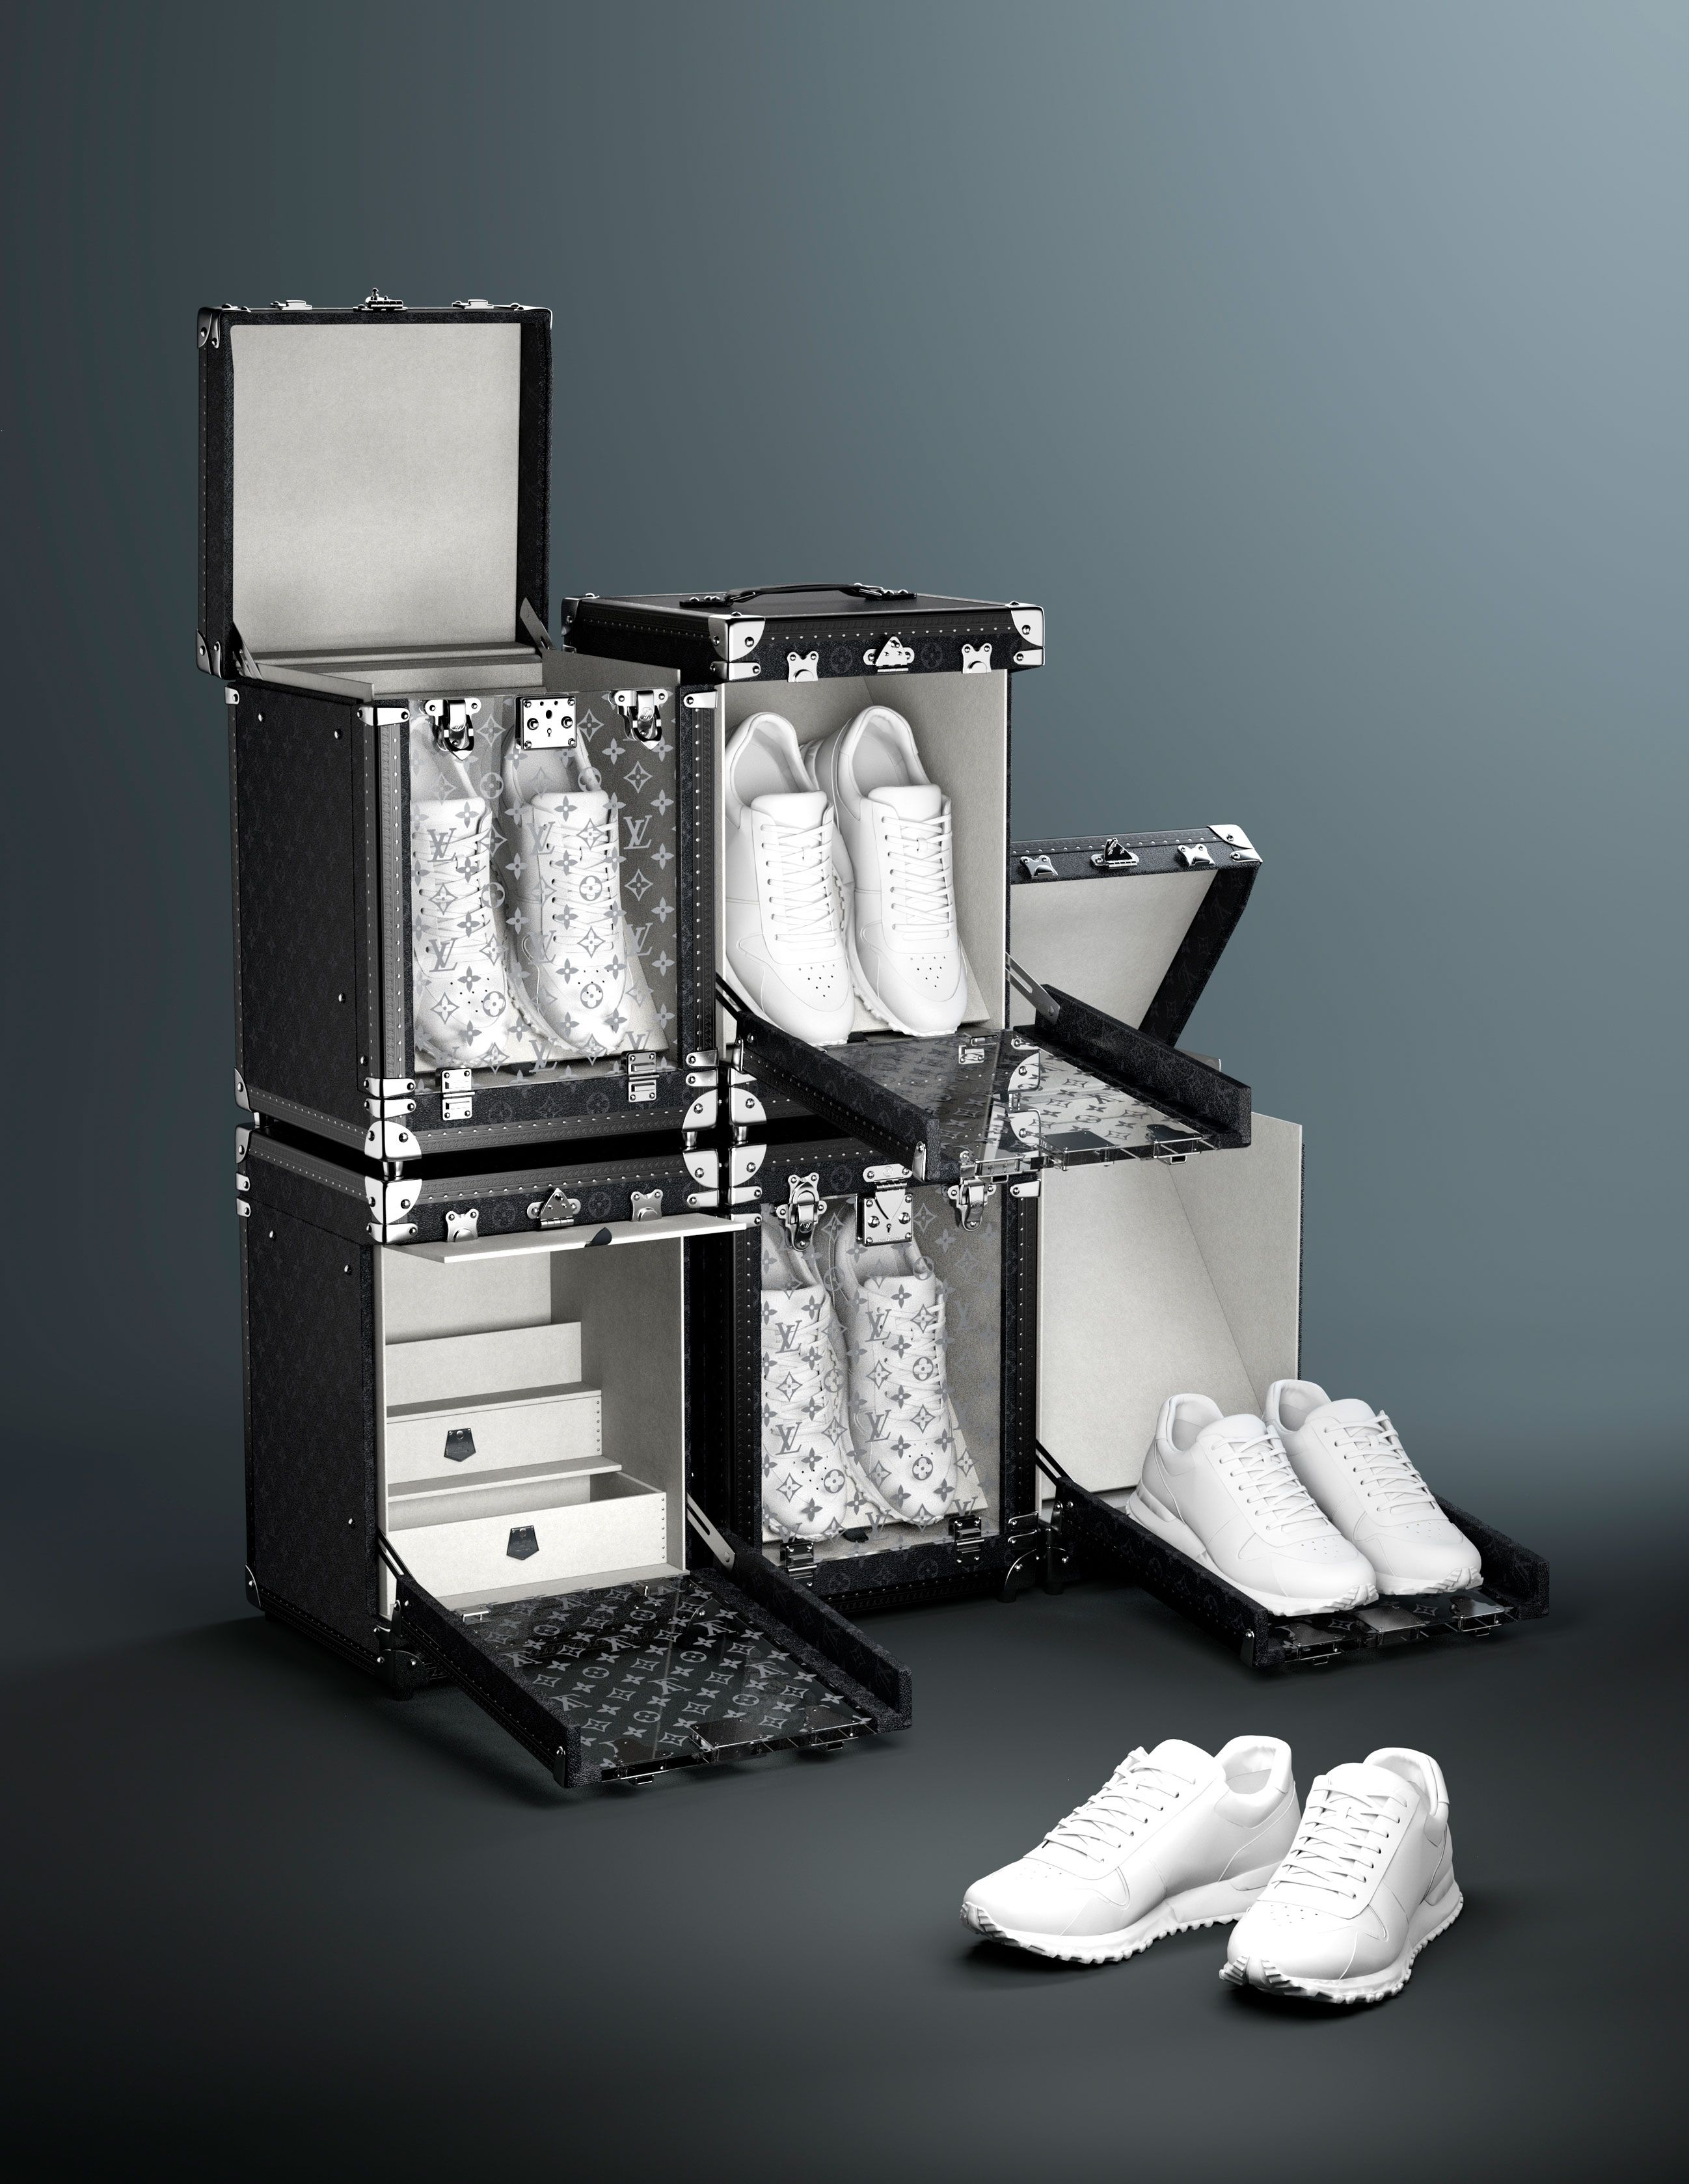 Louis Vuitton Has Developed an Extremely Baller Way to Store Your Sneakers